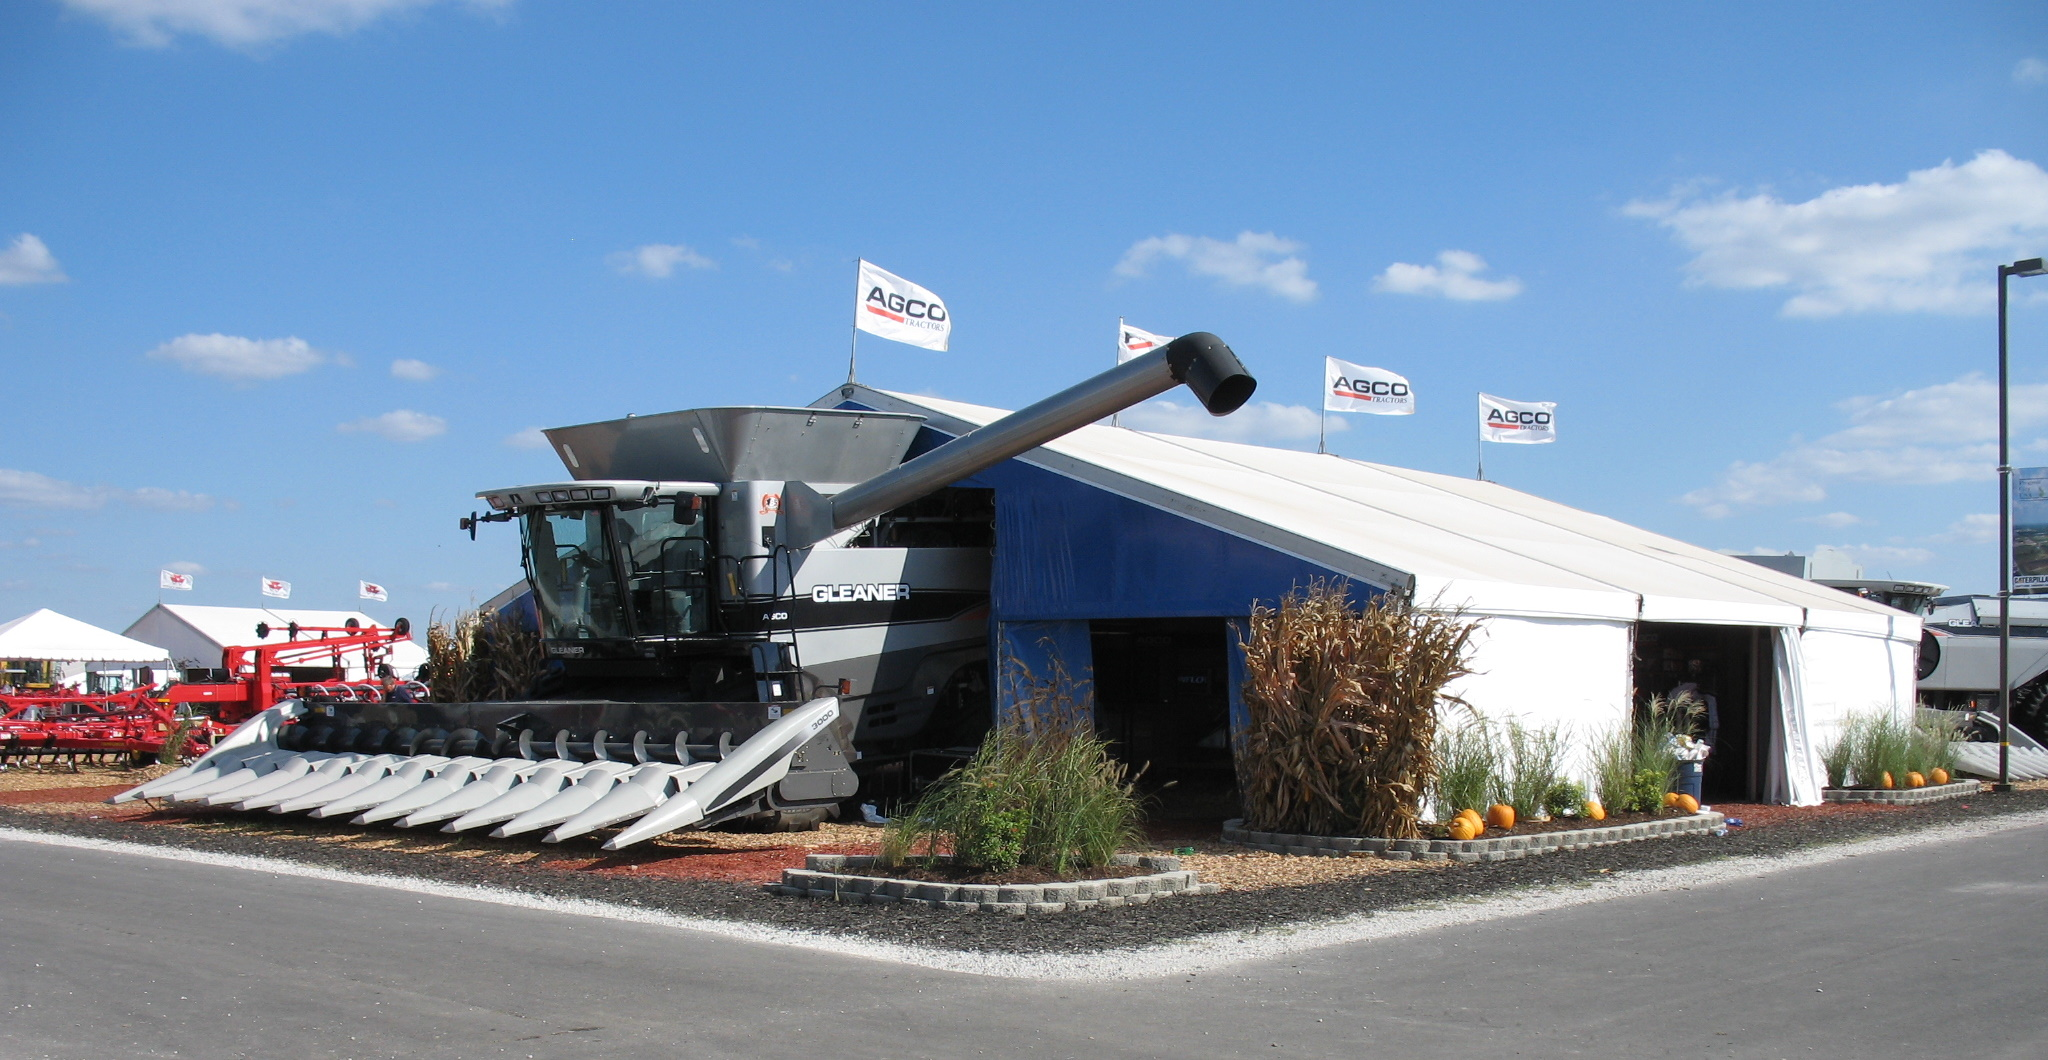 fordson with gleaner with File Agco Gleaner  Bine At Farm Progress Show 2007 on Viewit moreover Eq 23993 besides Gleaner Parts Diagram furthermore Viewit moreover One Year Reign Of The Curtis Curtis Baldwins Limited Production  bine.